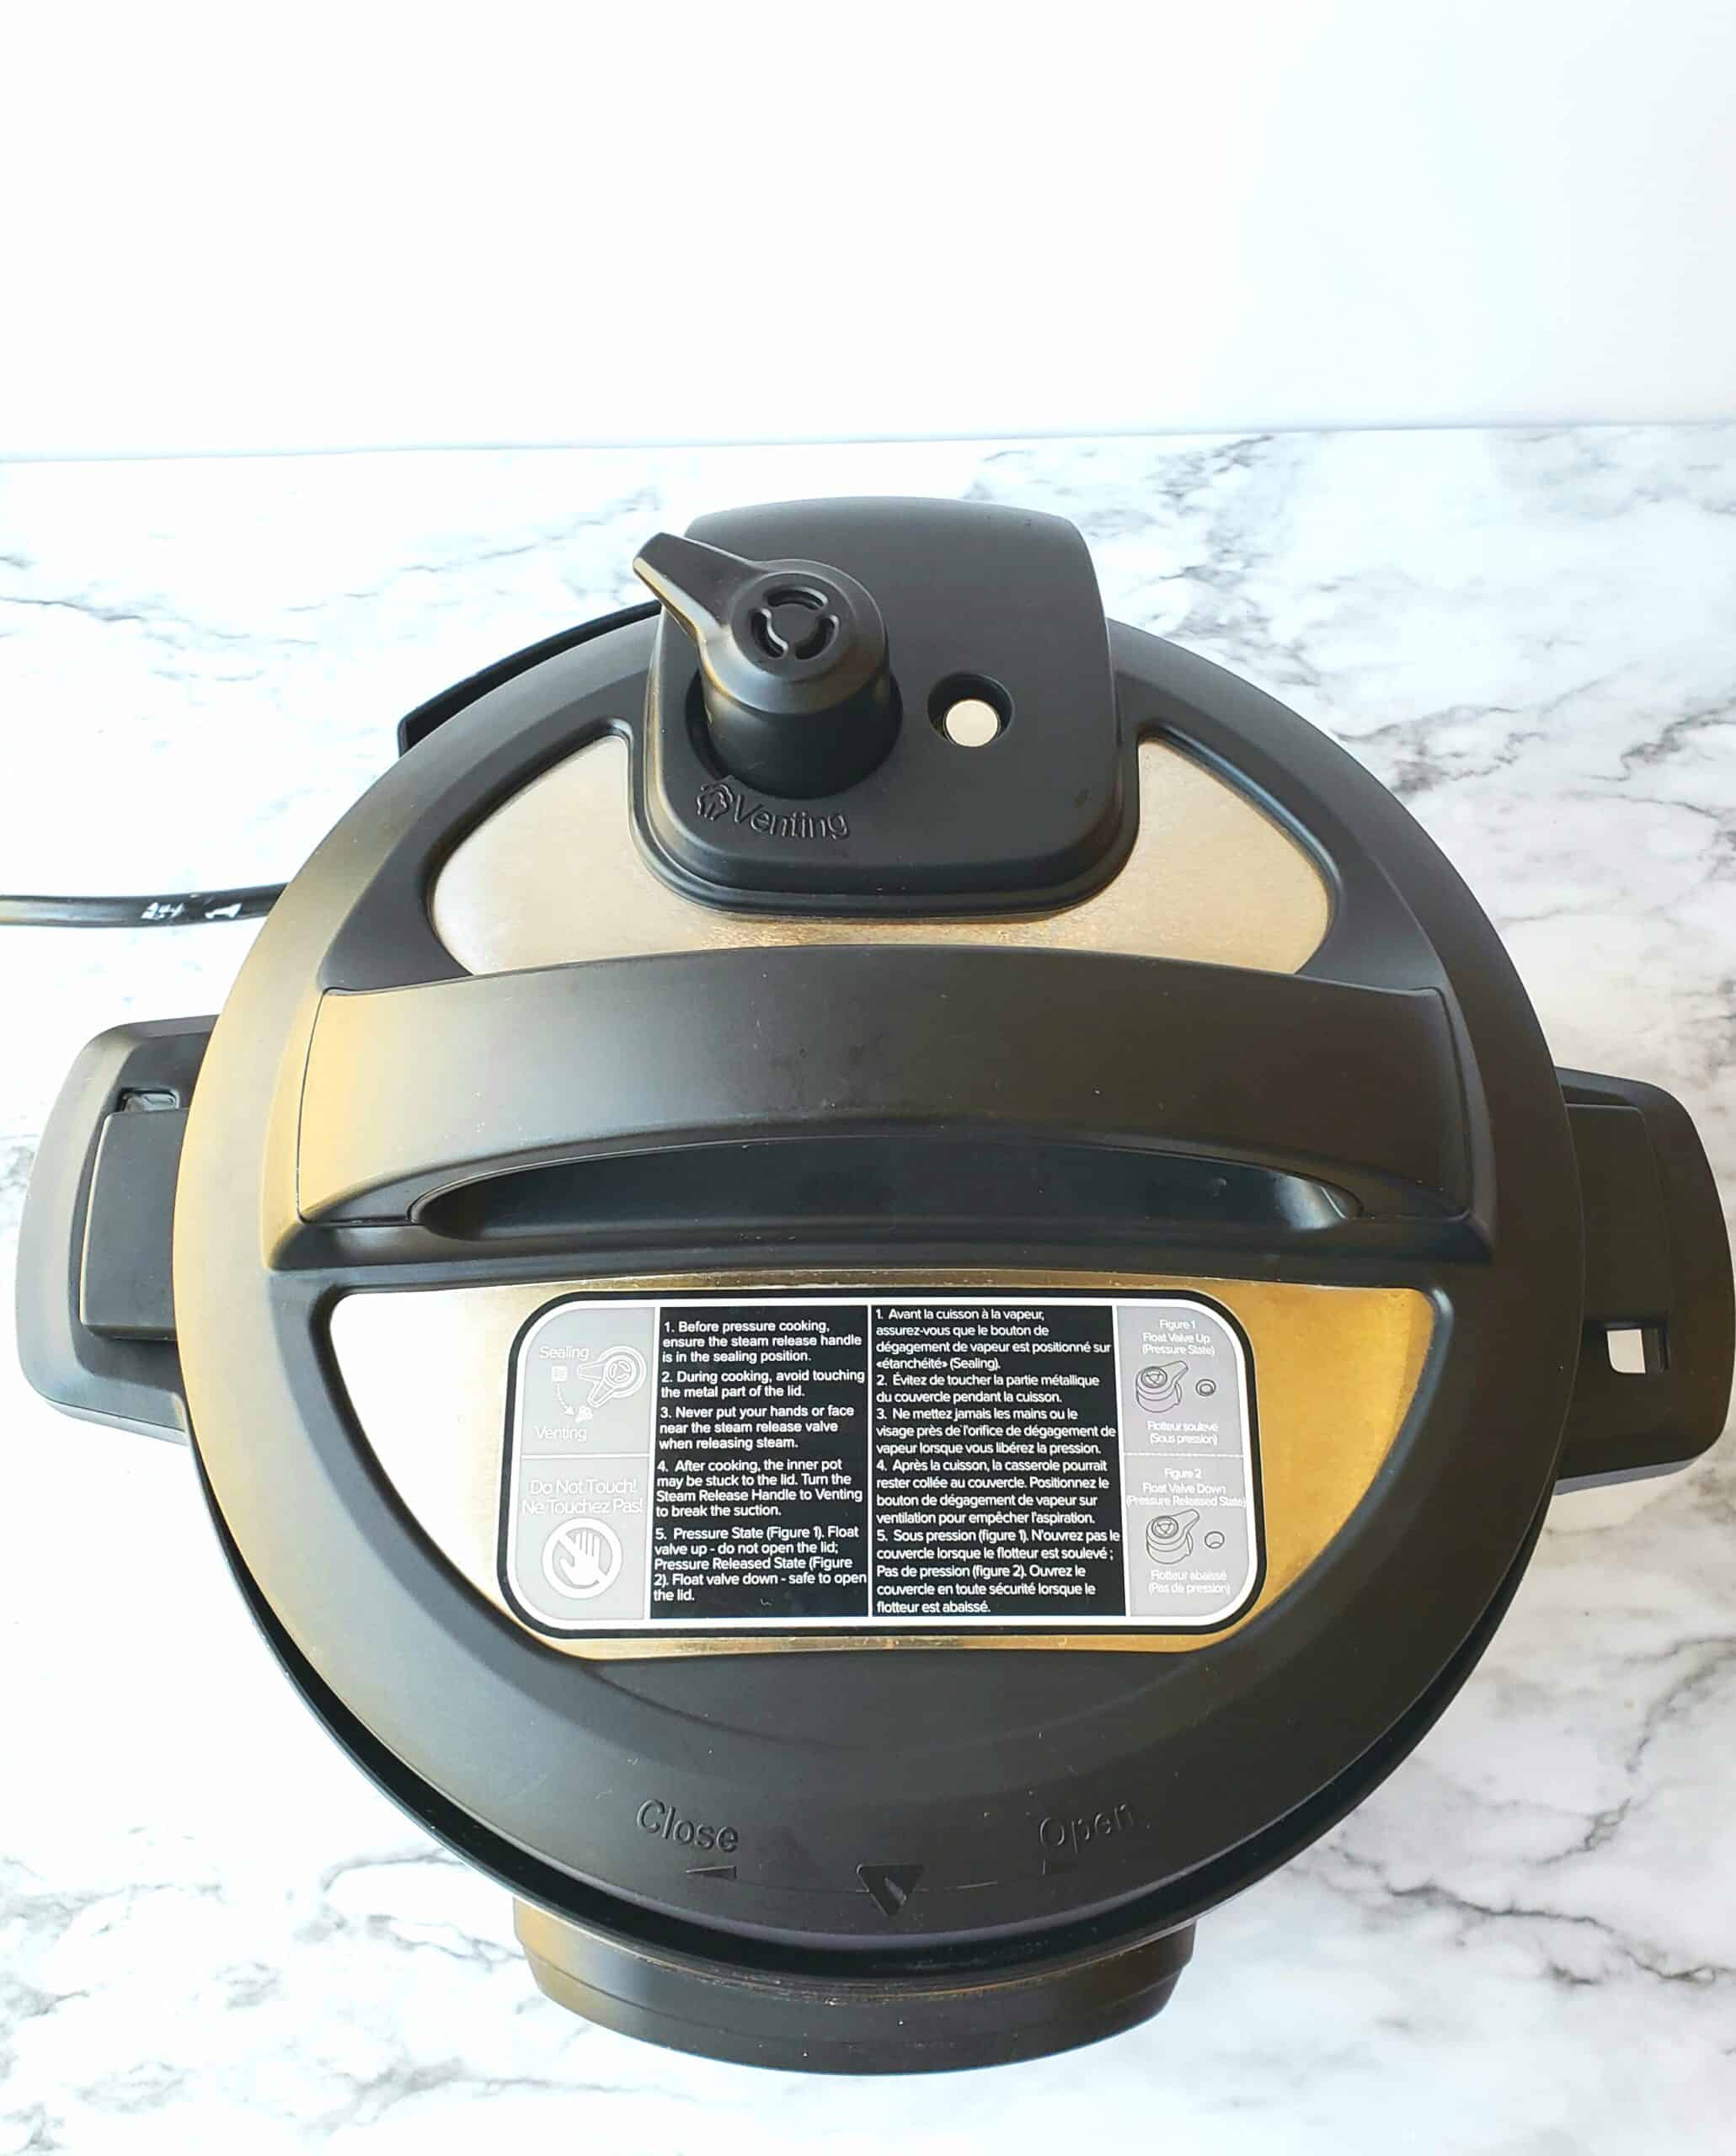 Instant Pot 6 quart Duo 7-in-1 showing Pressure release handle on Sealing